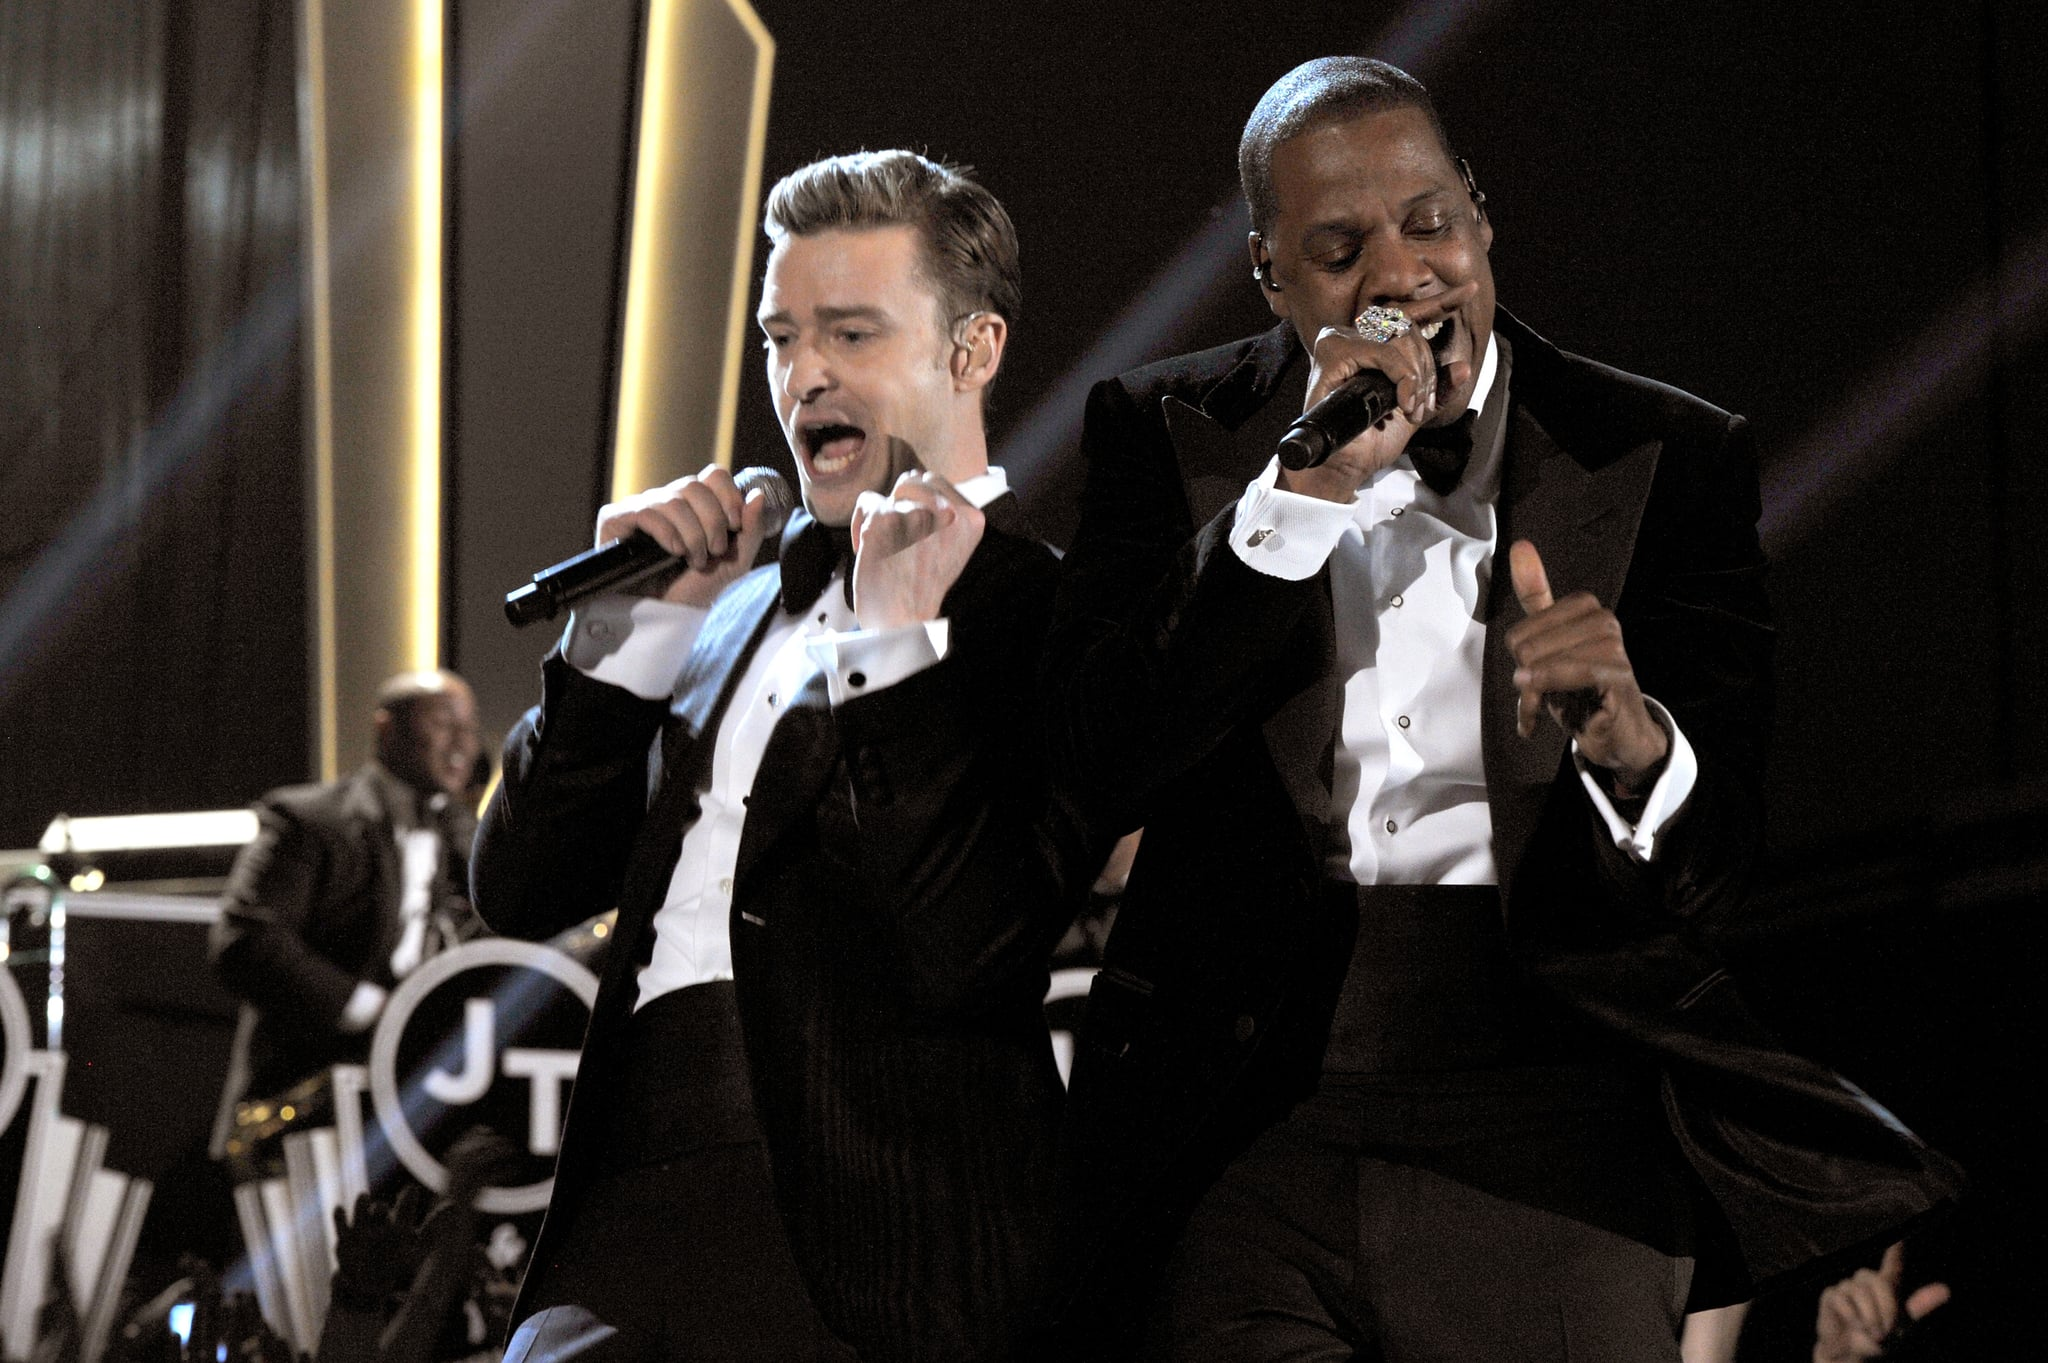 """Justin Timberlake and Jay Z took the 2013 show by storm with their performance of """"Suit & Tie."""""""